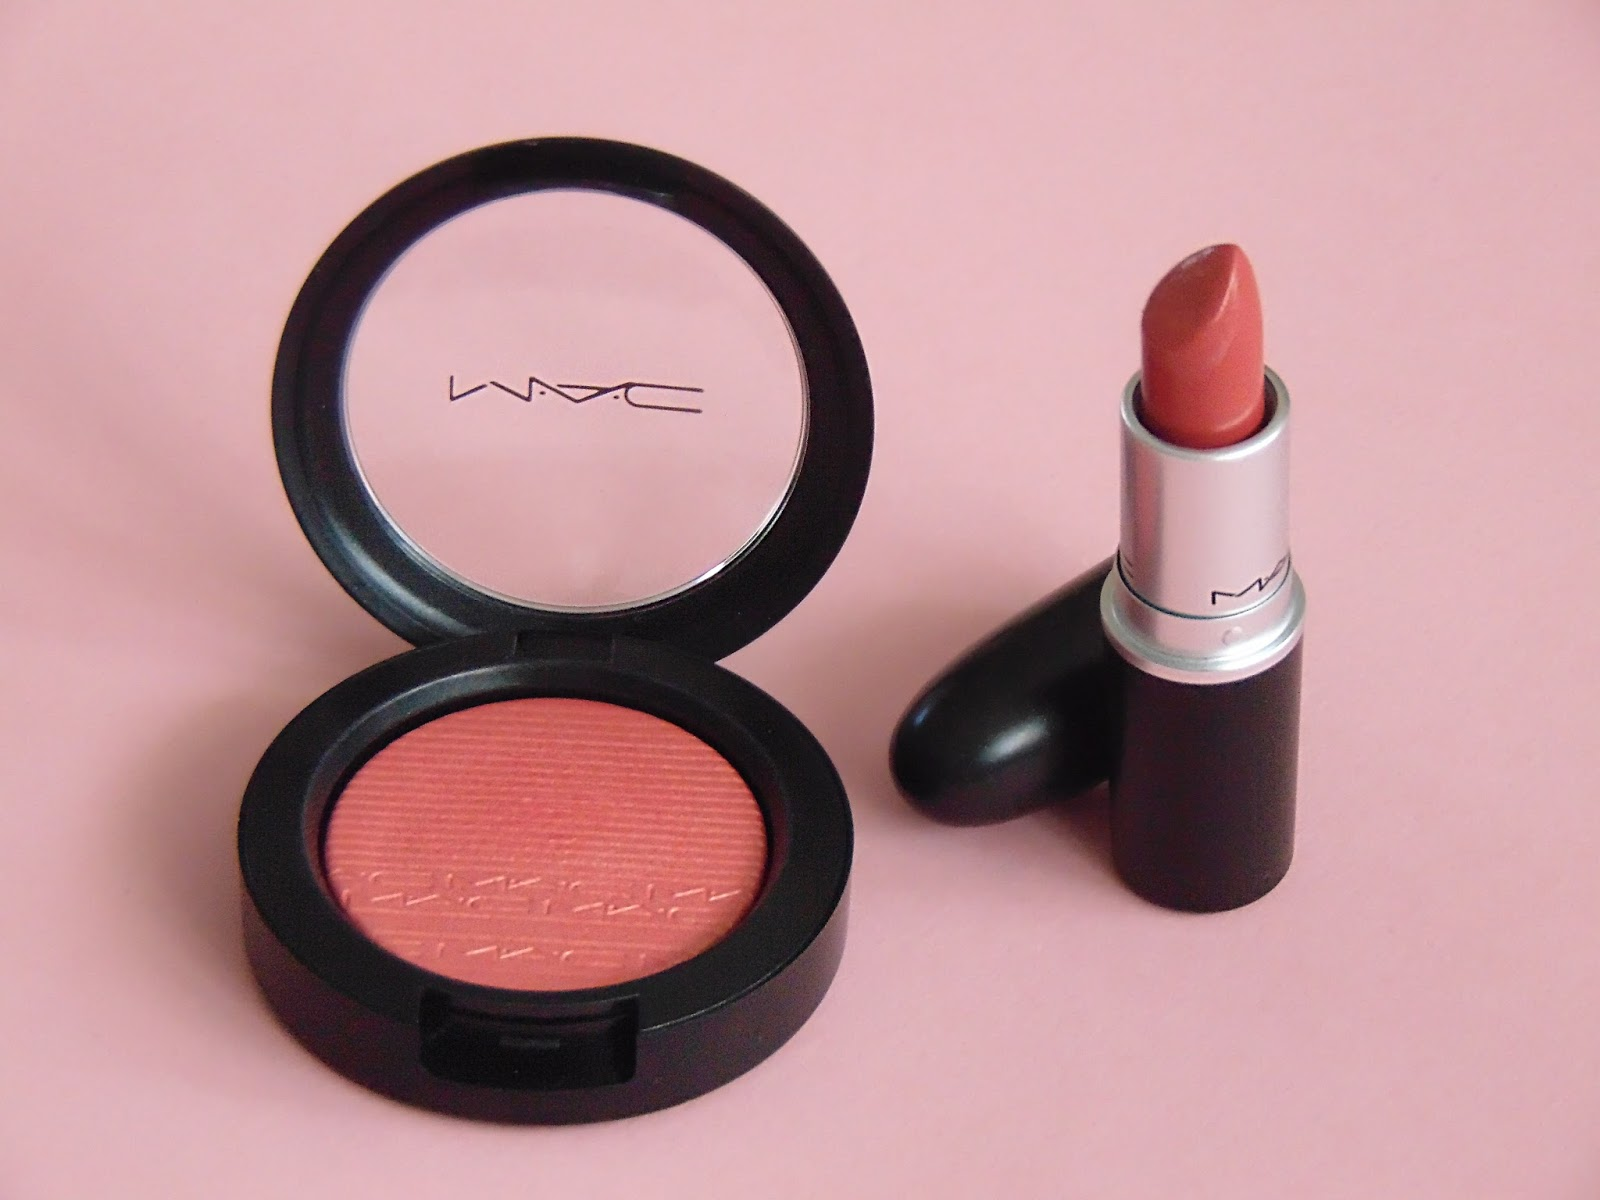 mac extra dimension blush cheeky bits lipstick see cheer